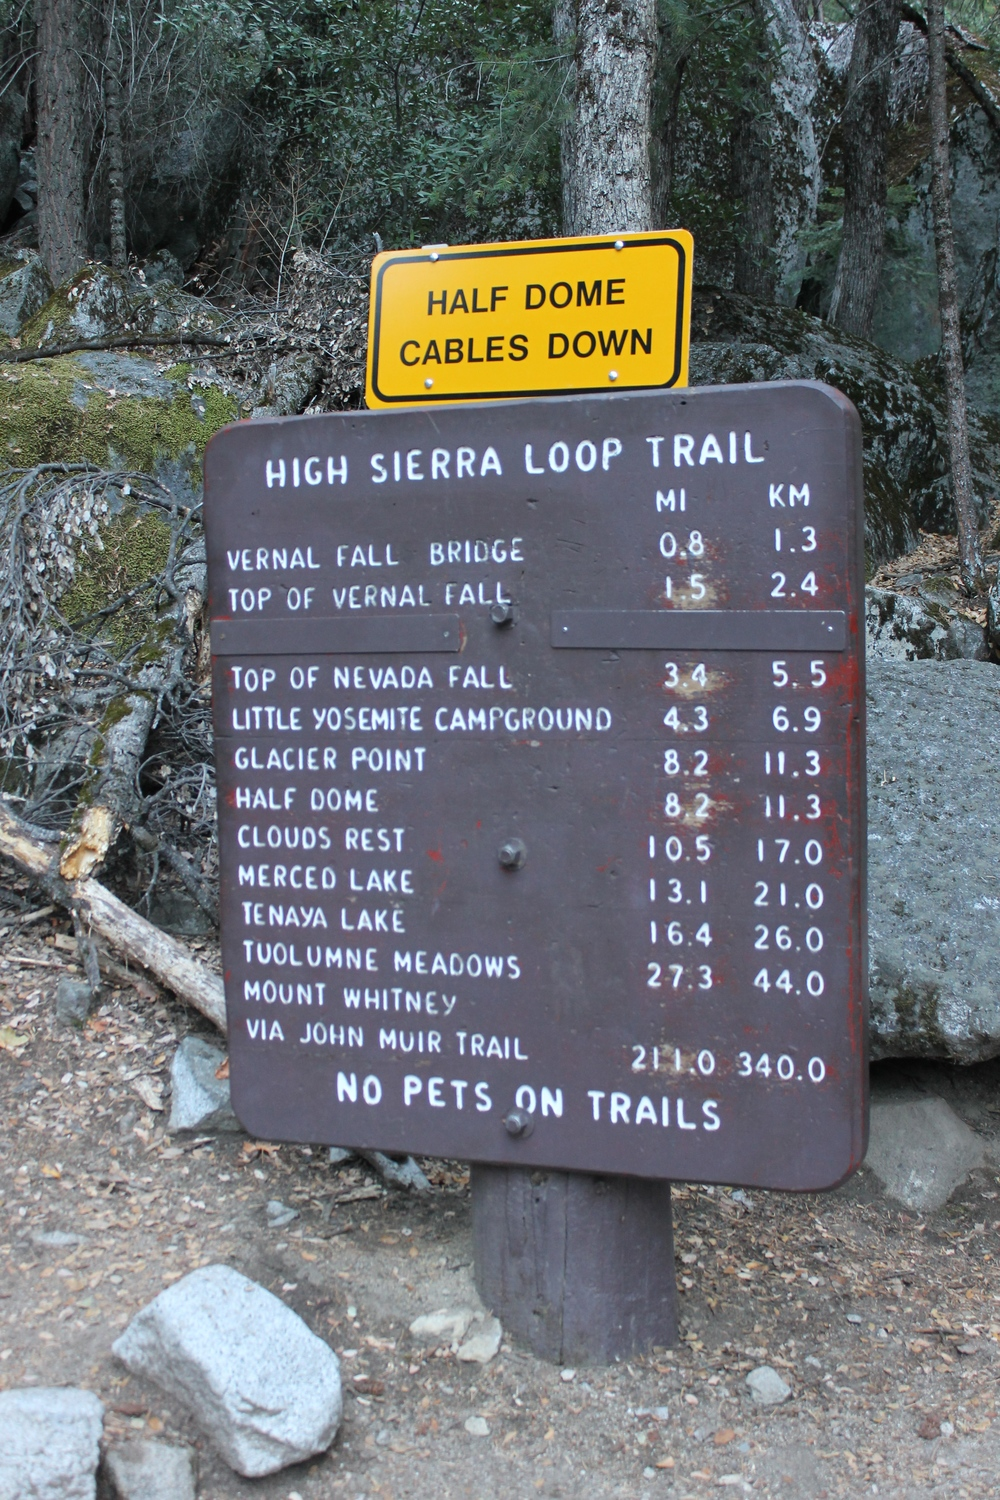 A little reminder that my hike to Clouds Rest will be quite a bit more challenging if Tioga Pass doesn't open...